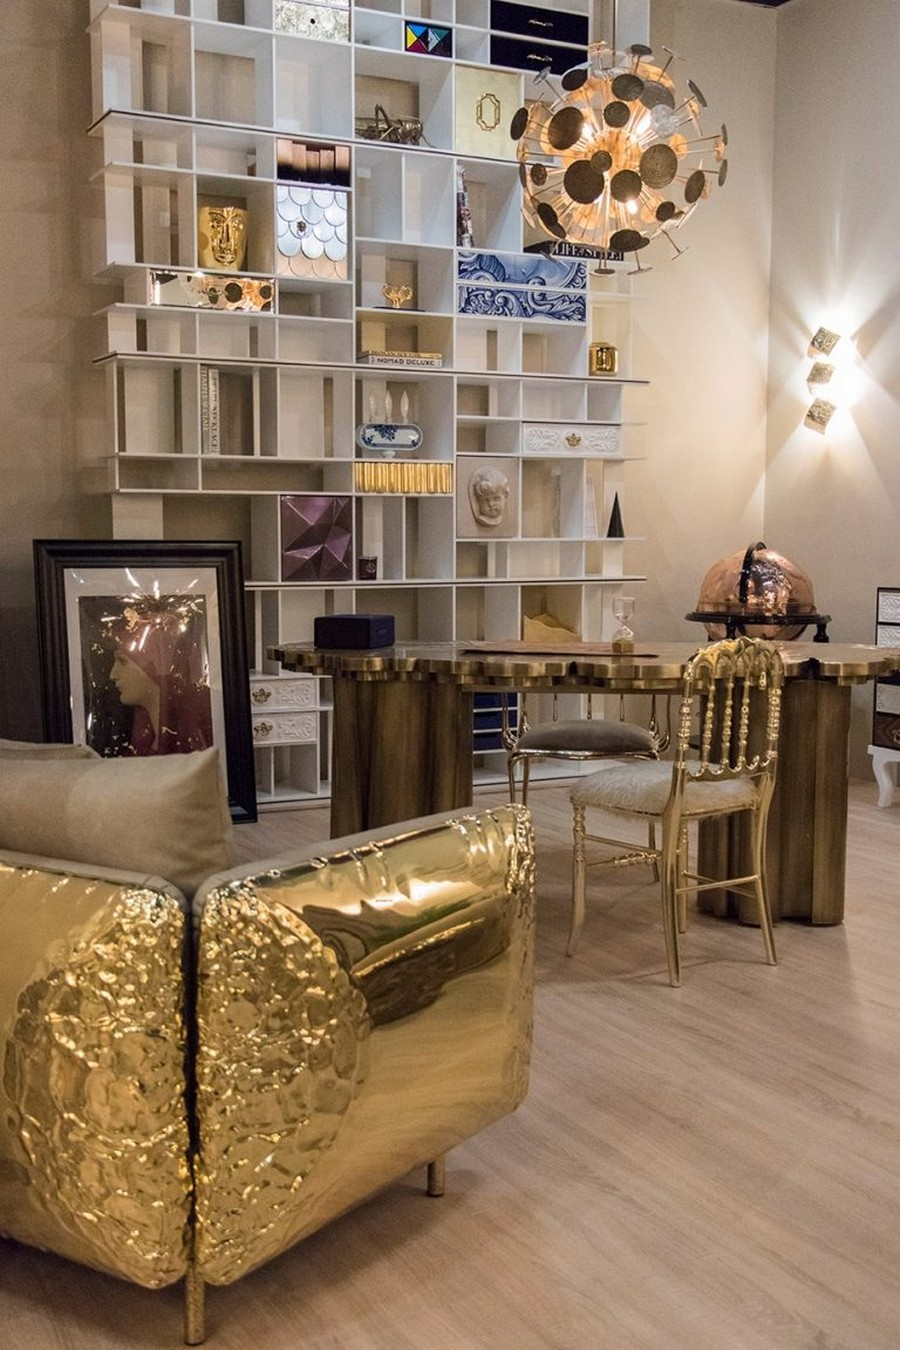 Maison et Objet The Ultimate Highlights From Maison et Objet Tradeshow! The Ultimate Highlights From Maison et Objet Tradeshow 3